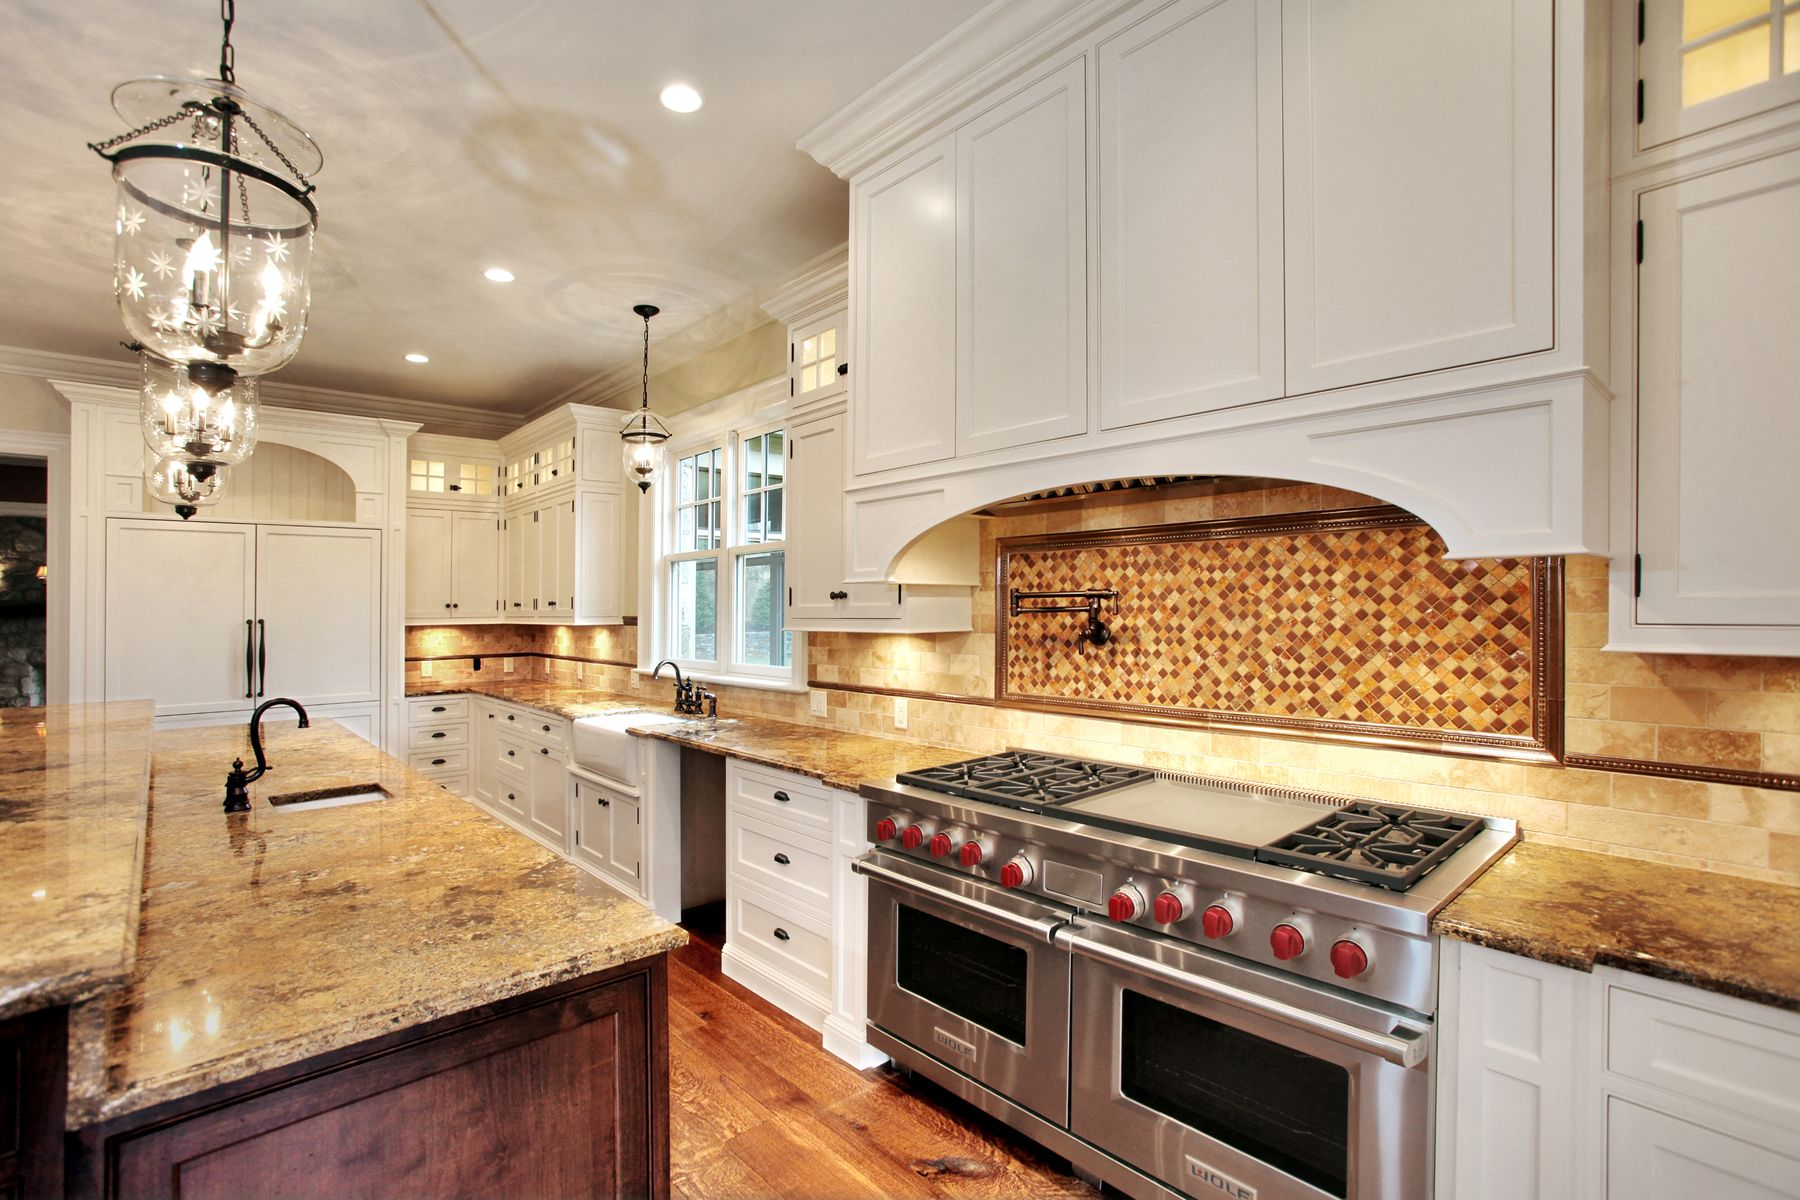 Pin by Point of View Interiors, LLC on Westport, CT - New ...